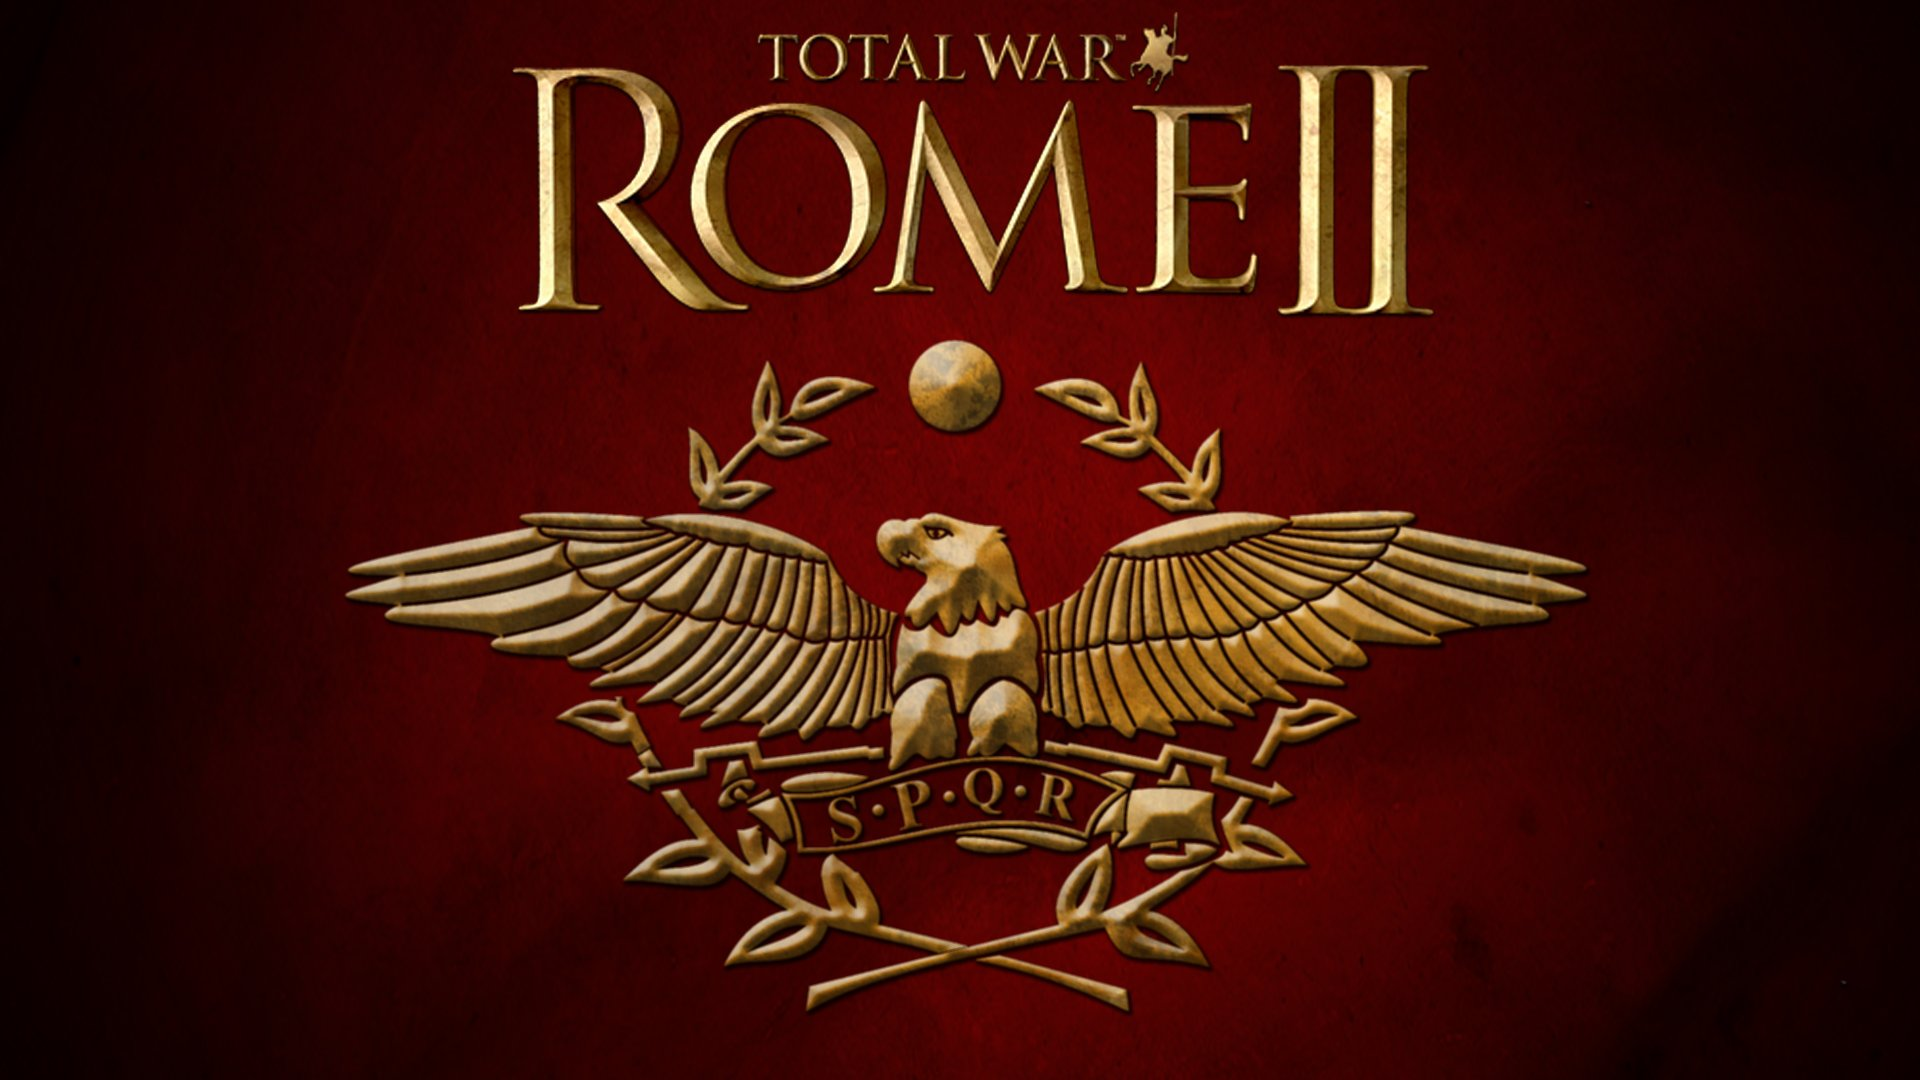 Total War Rome 2 Logo Wallpaper Wallpaper 1920x1080